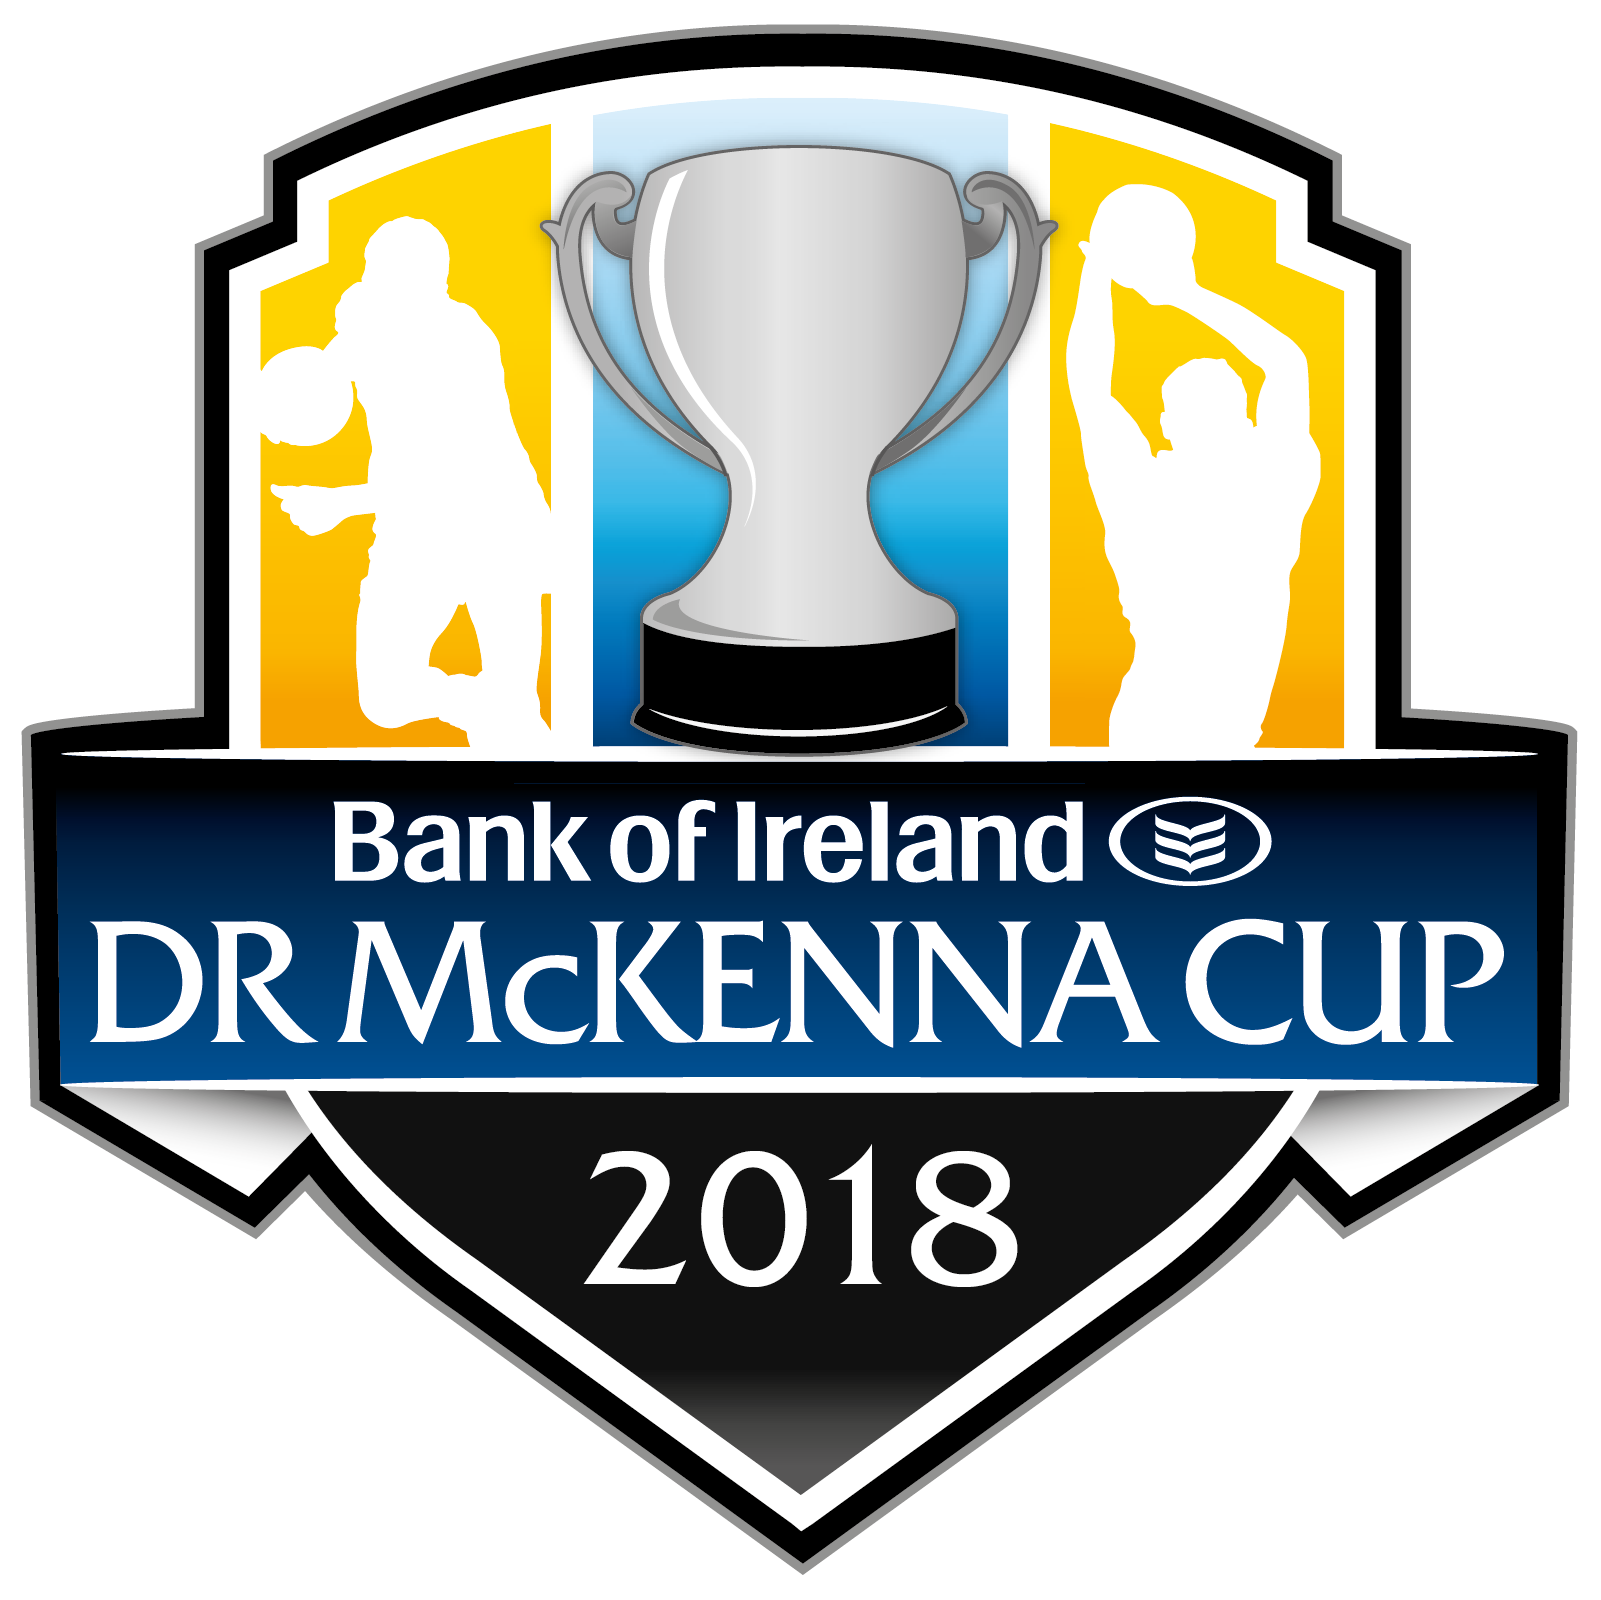 Bank of Ireland Dr McKenna Cup Round 1 Podcast